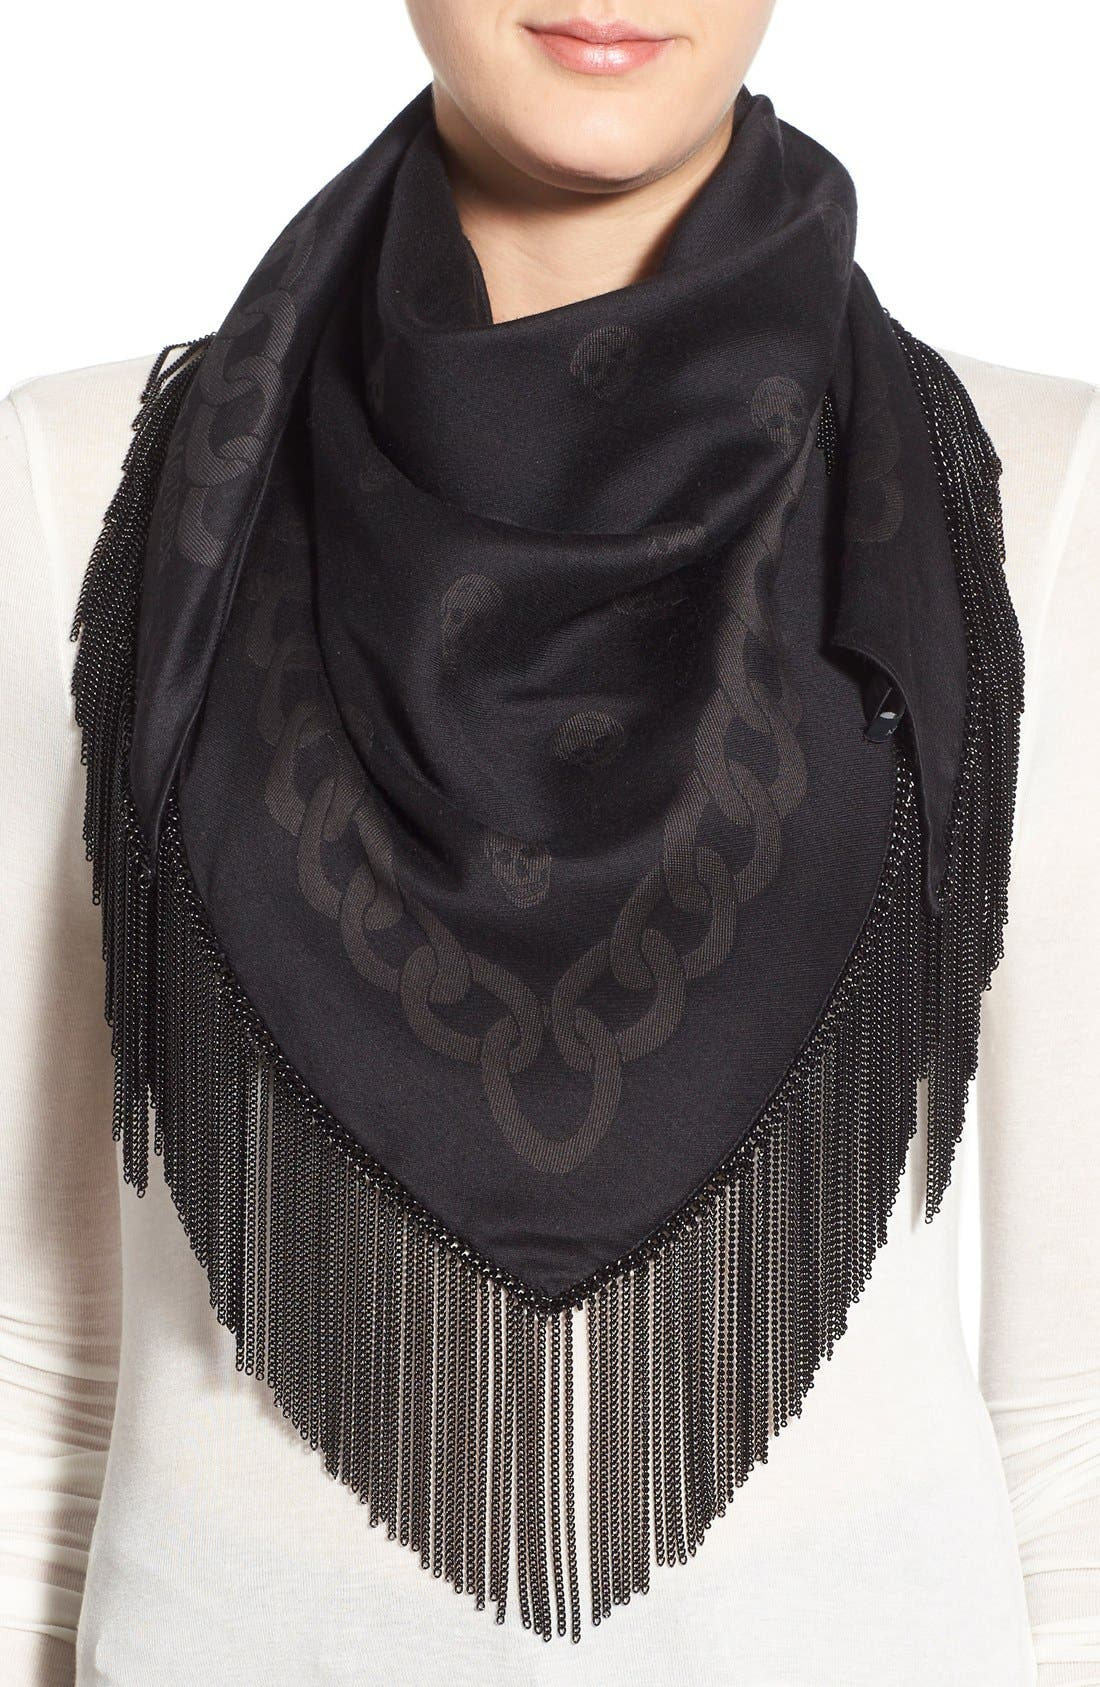 Alternate Image 1 Selected - Alexander McQueen Chain Fringe Wool & Silk Scarf